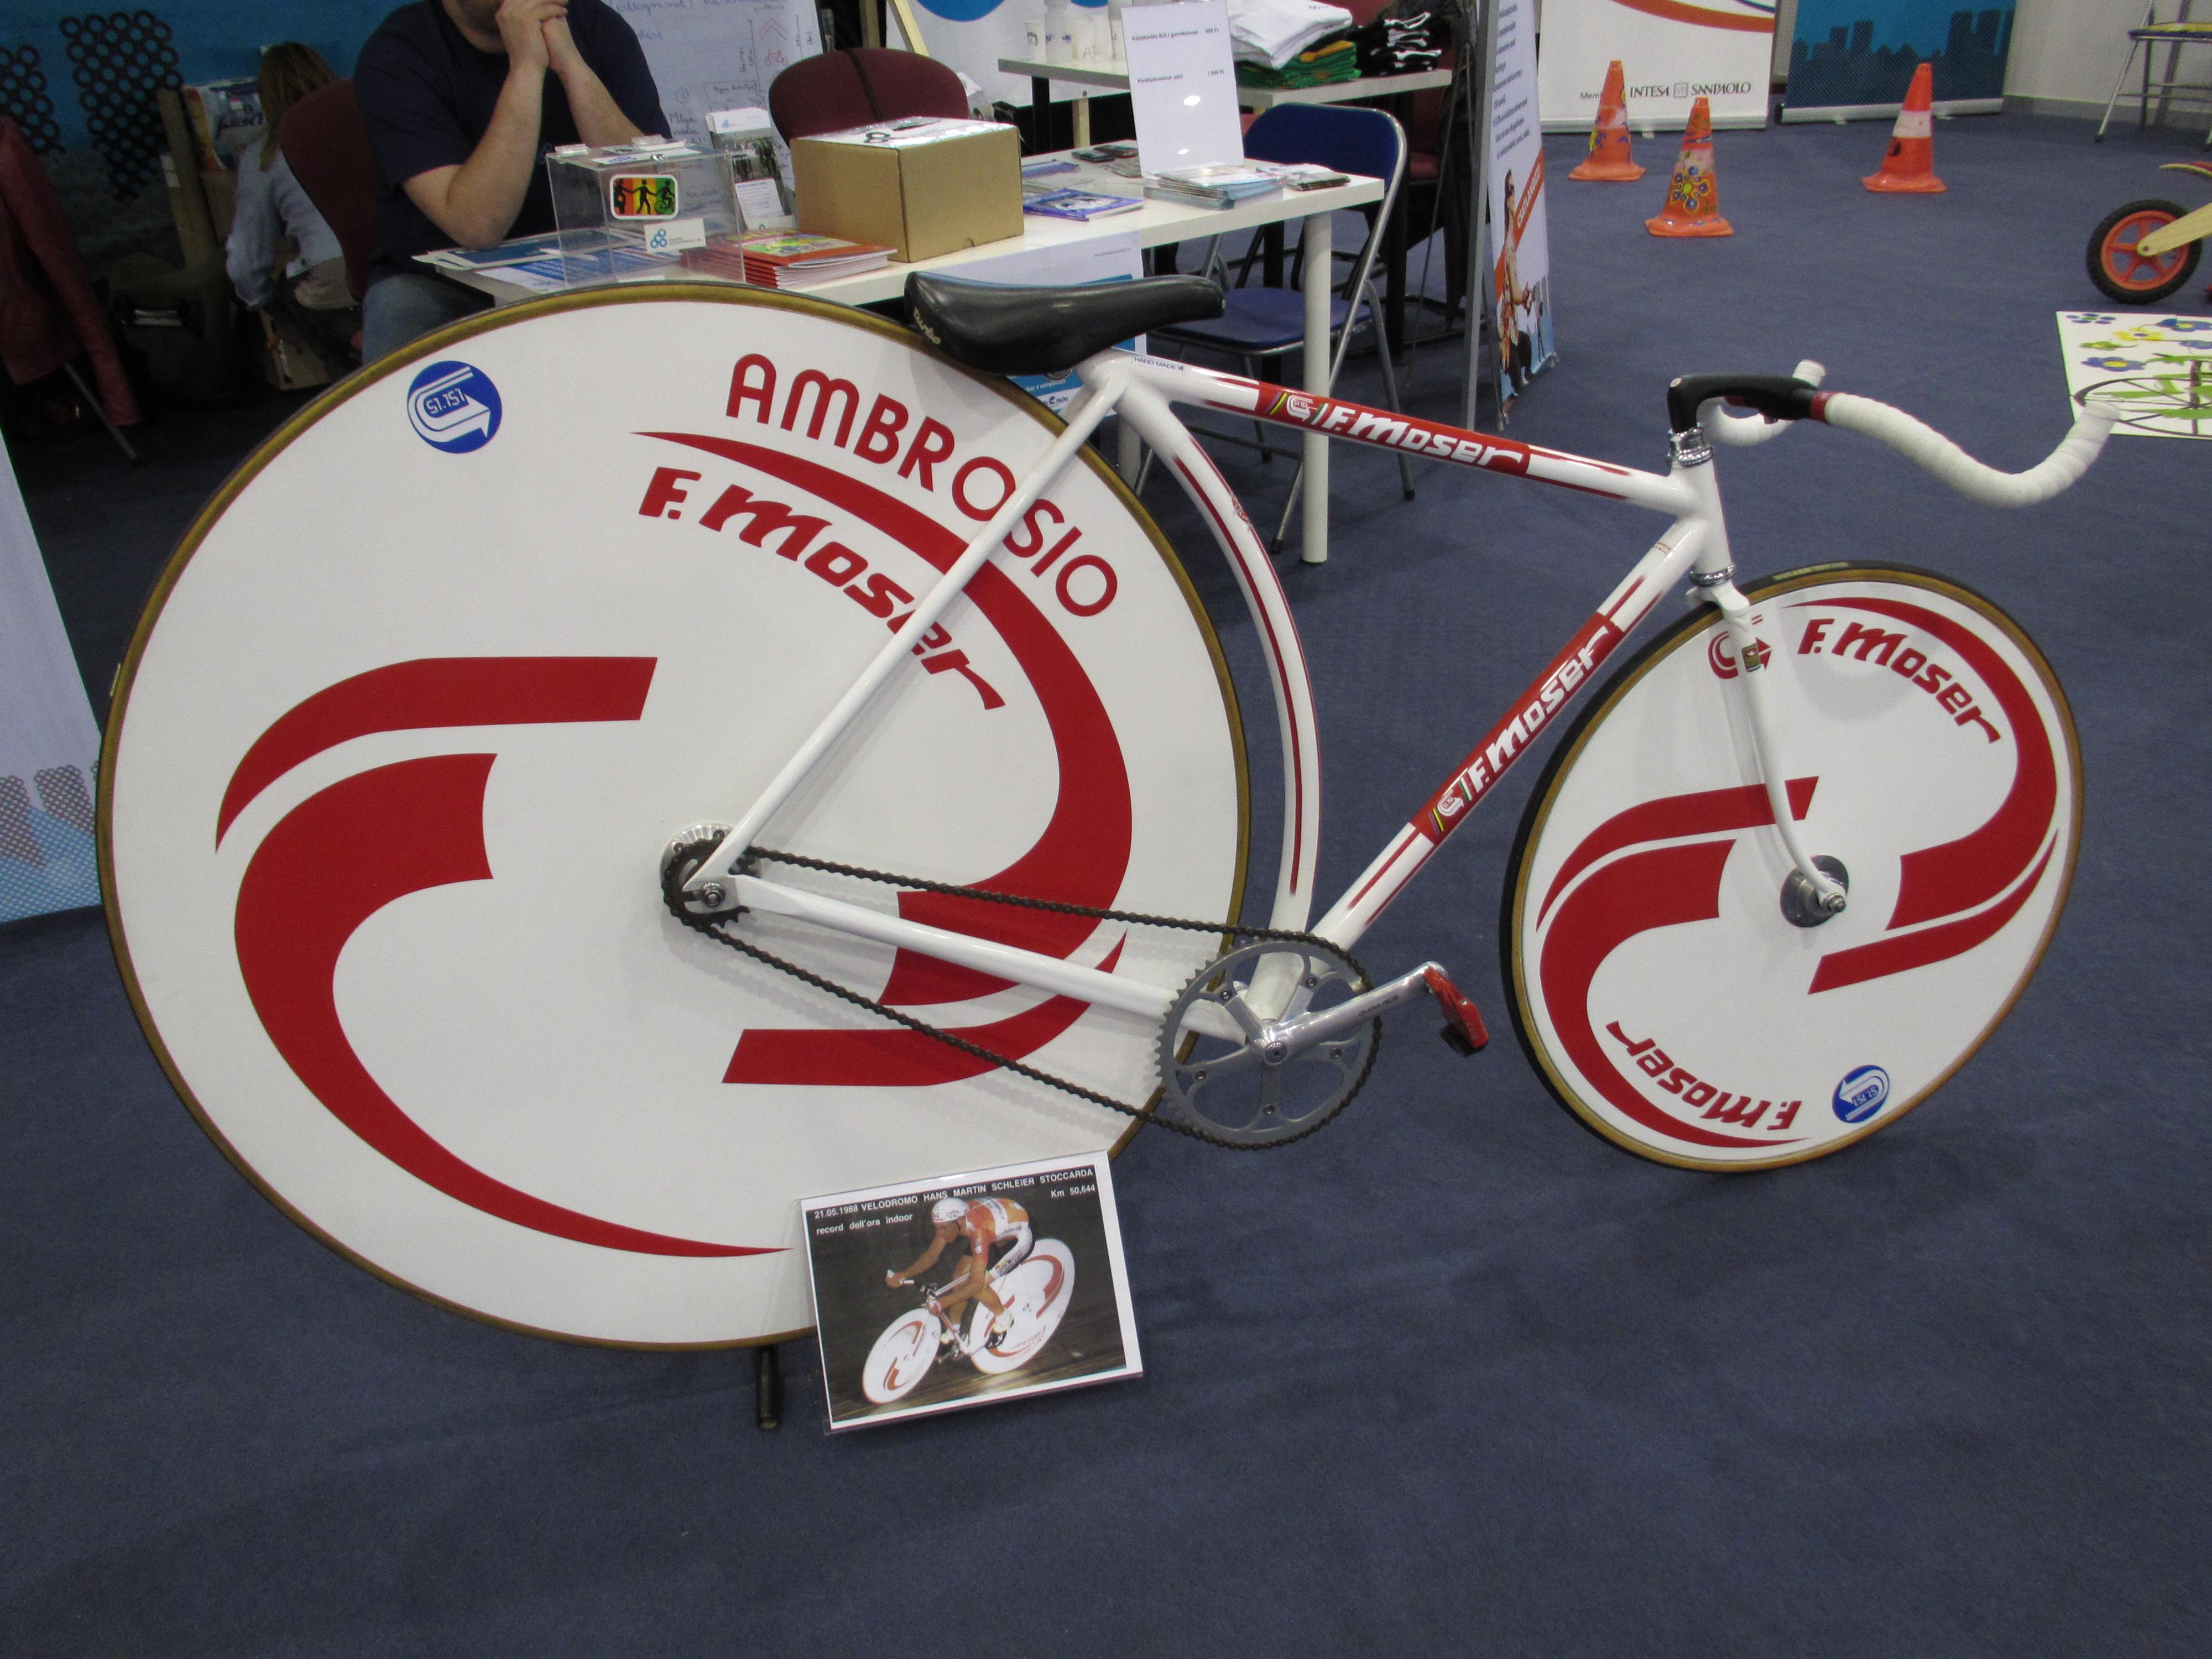 francesco-moser-hour-record-bike.jpg